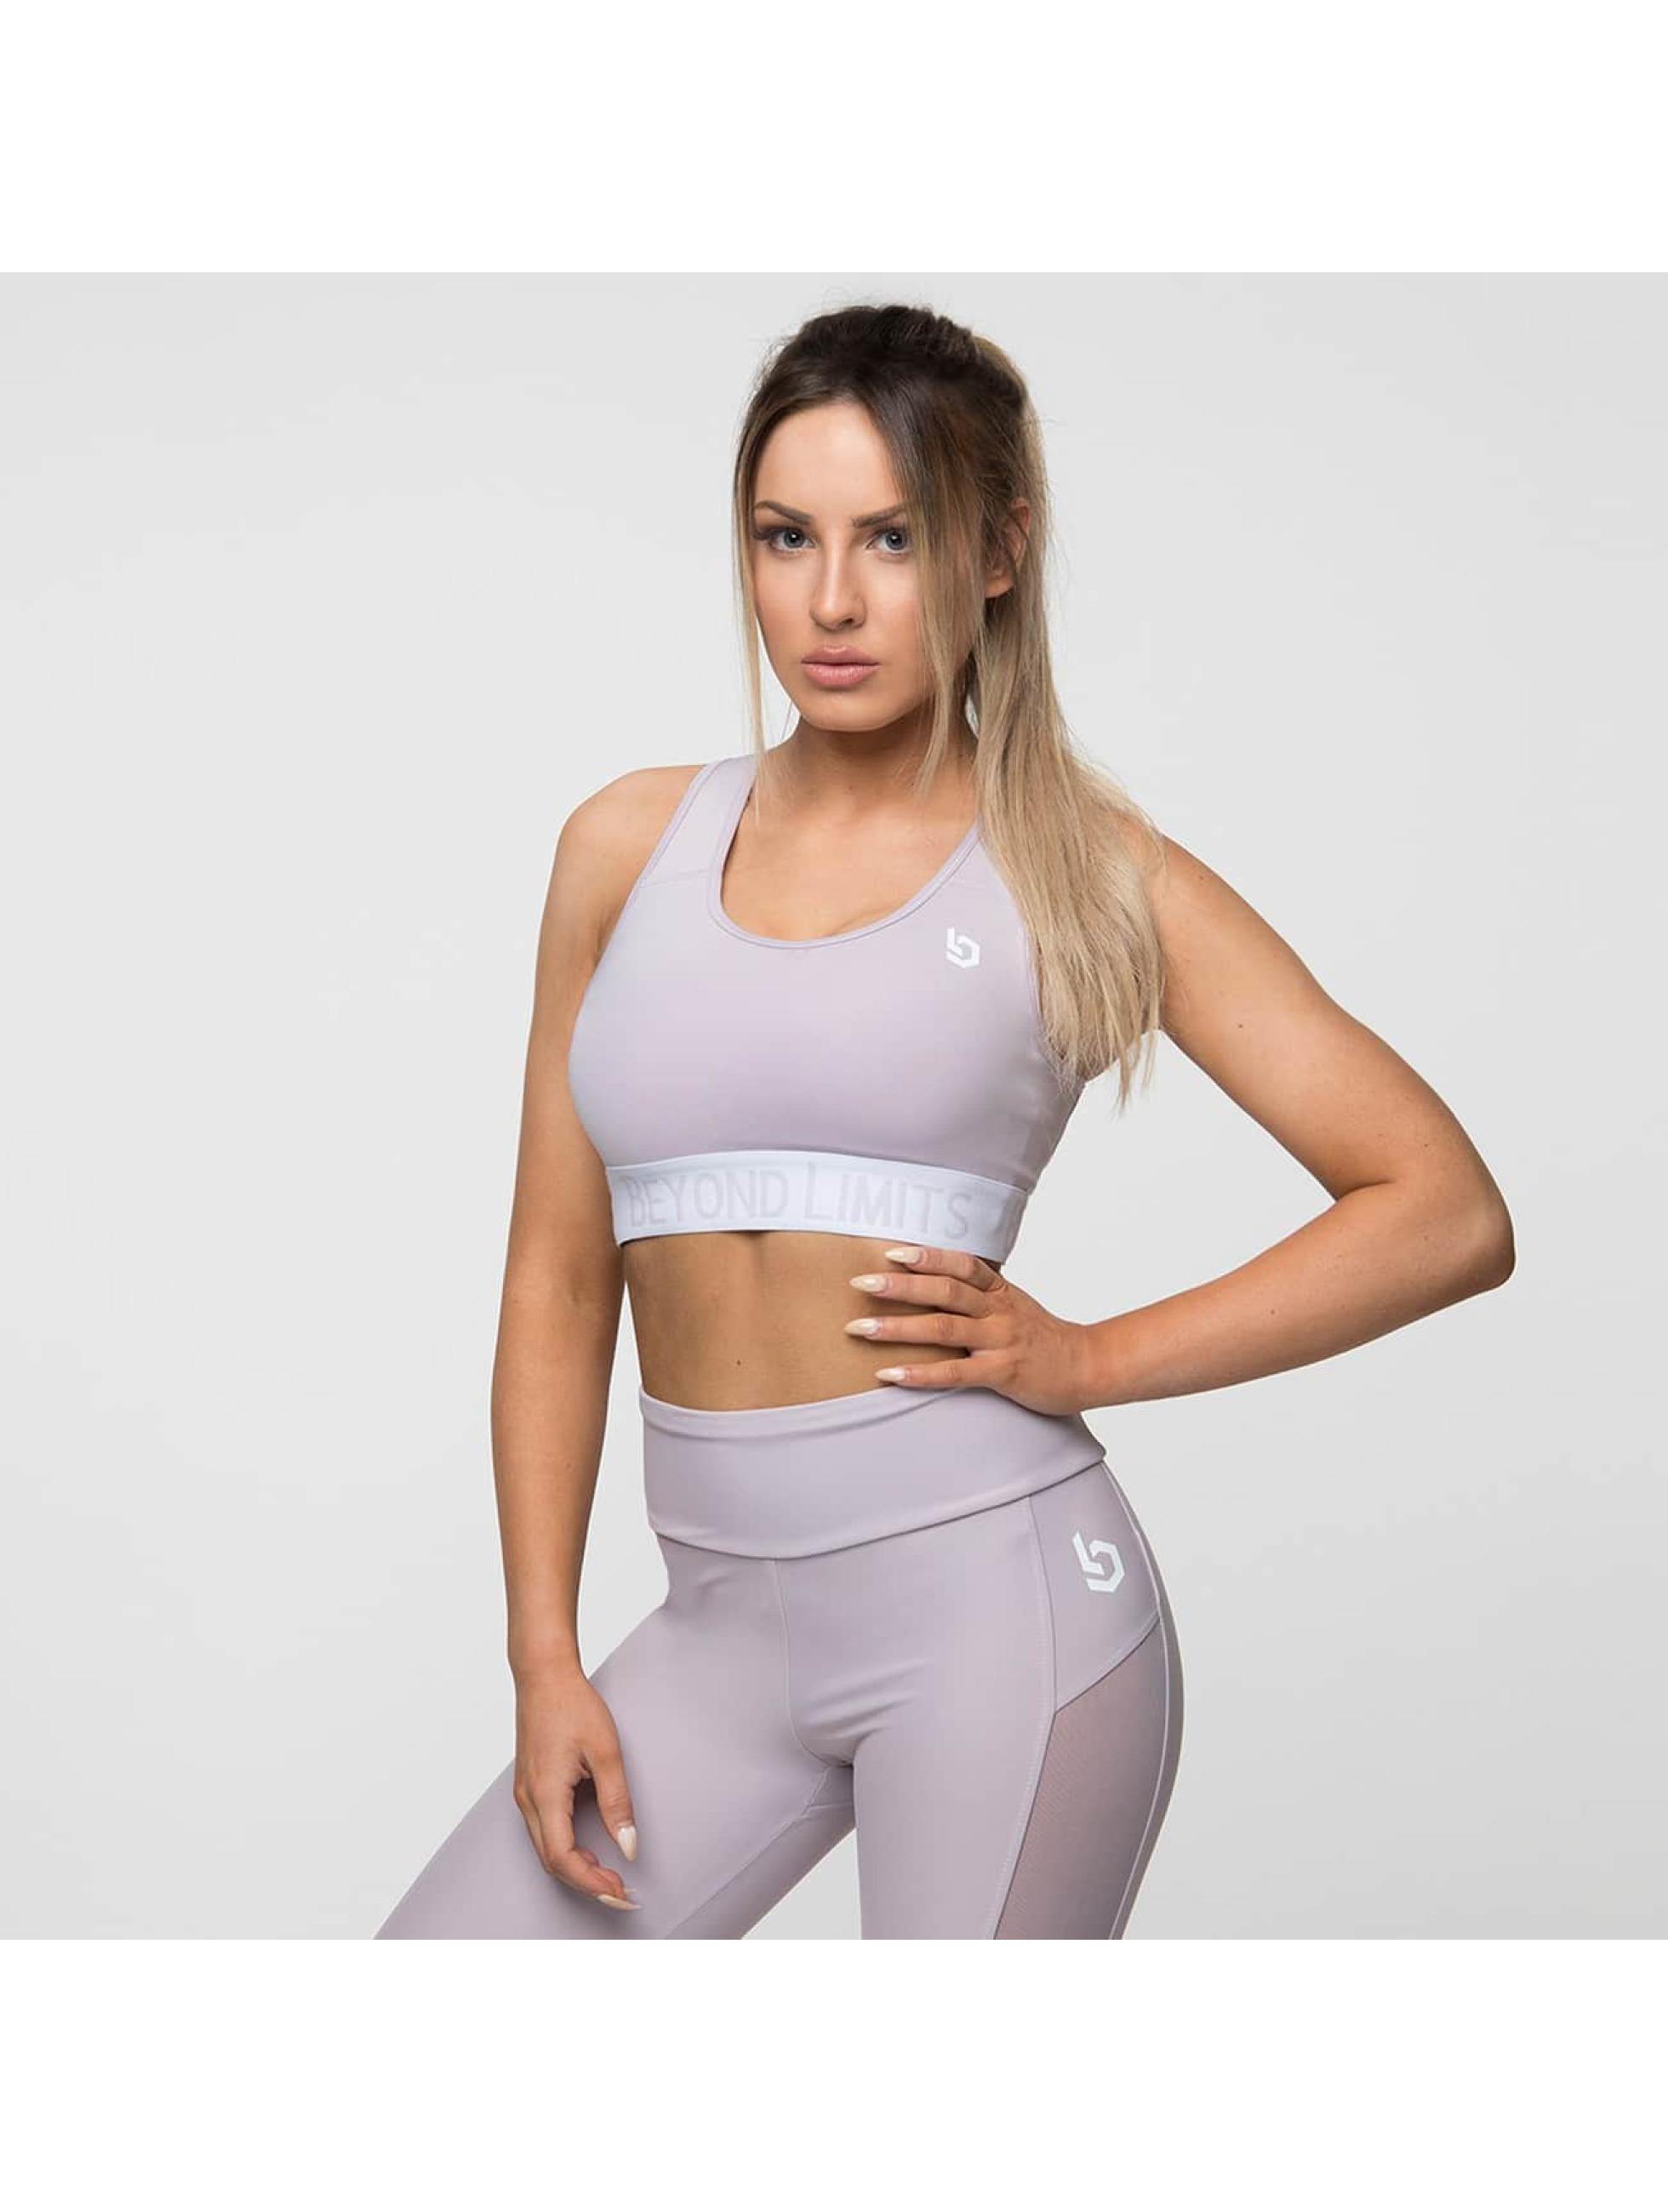 Beyond Limits Ropa interior Free Motion rosa